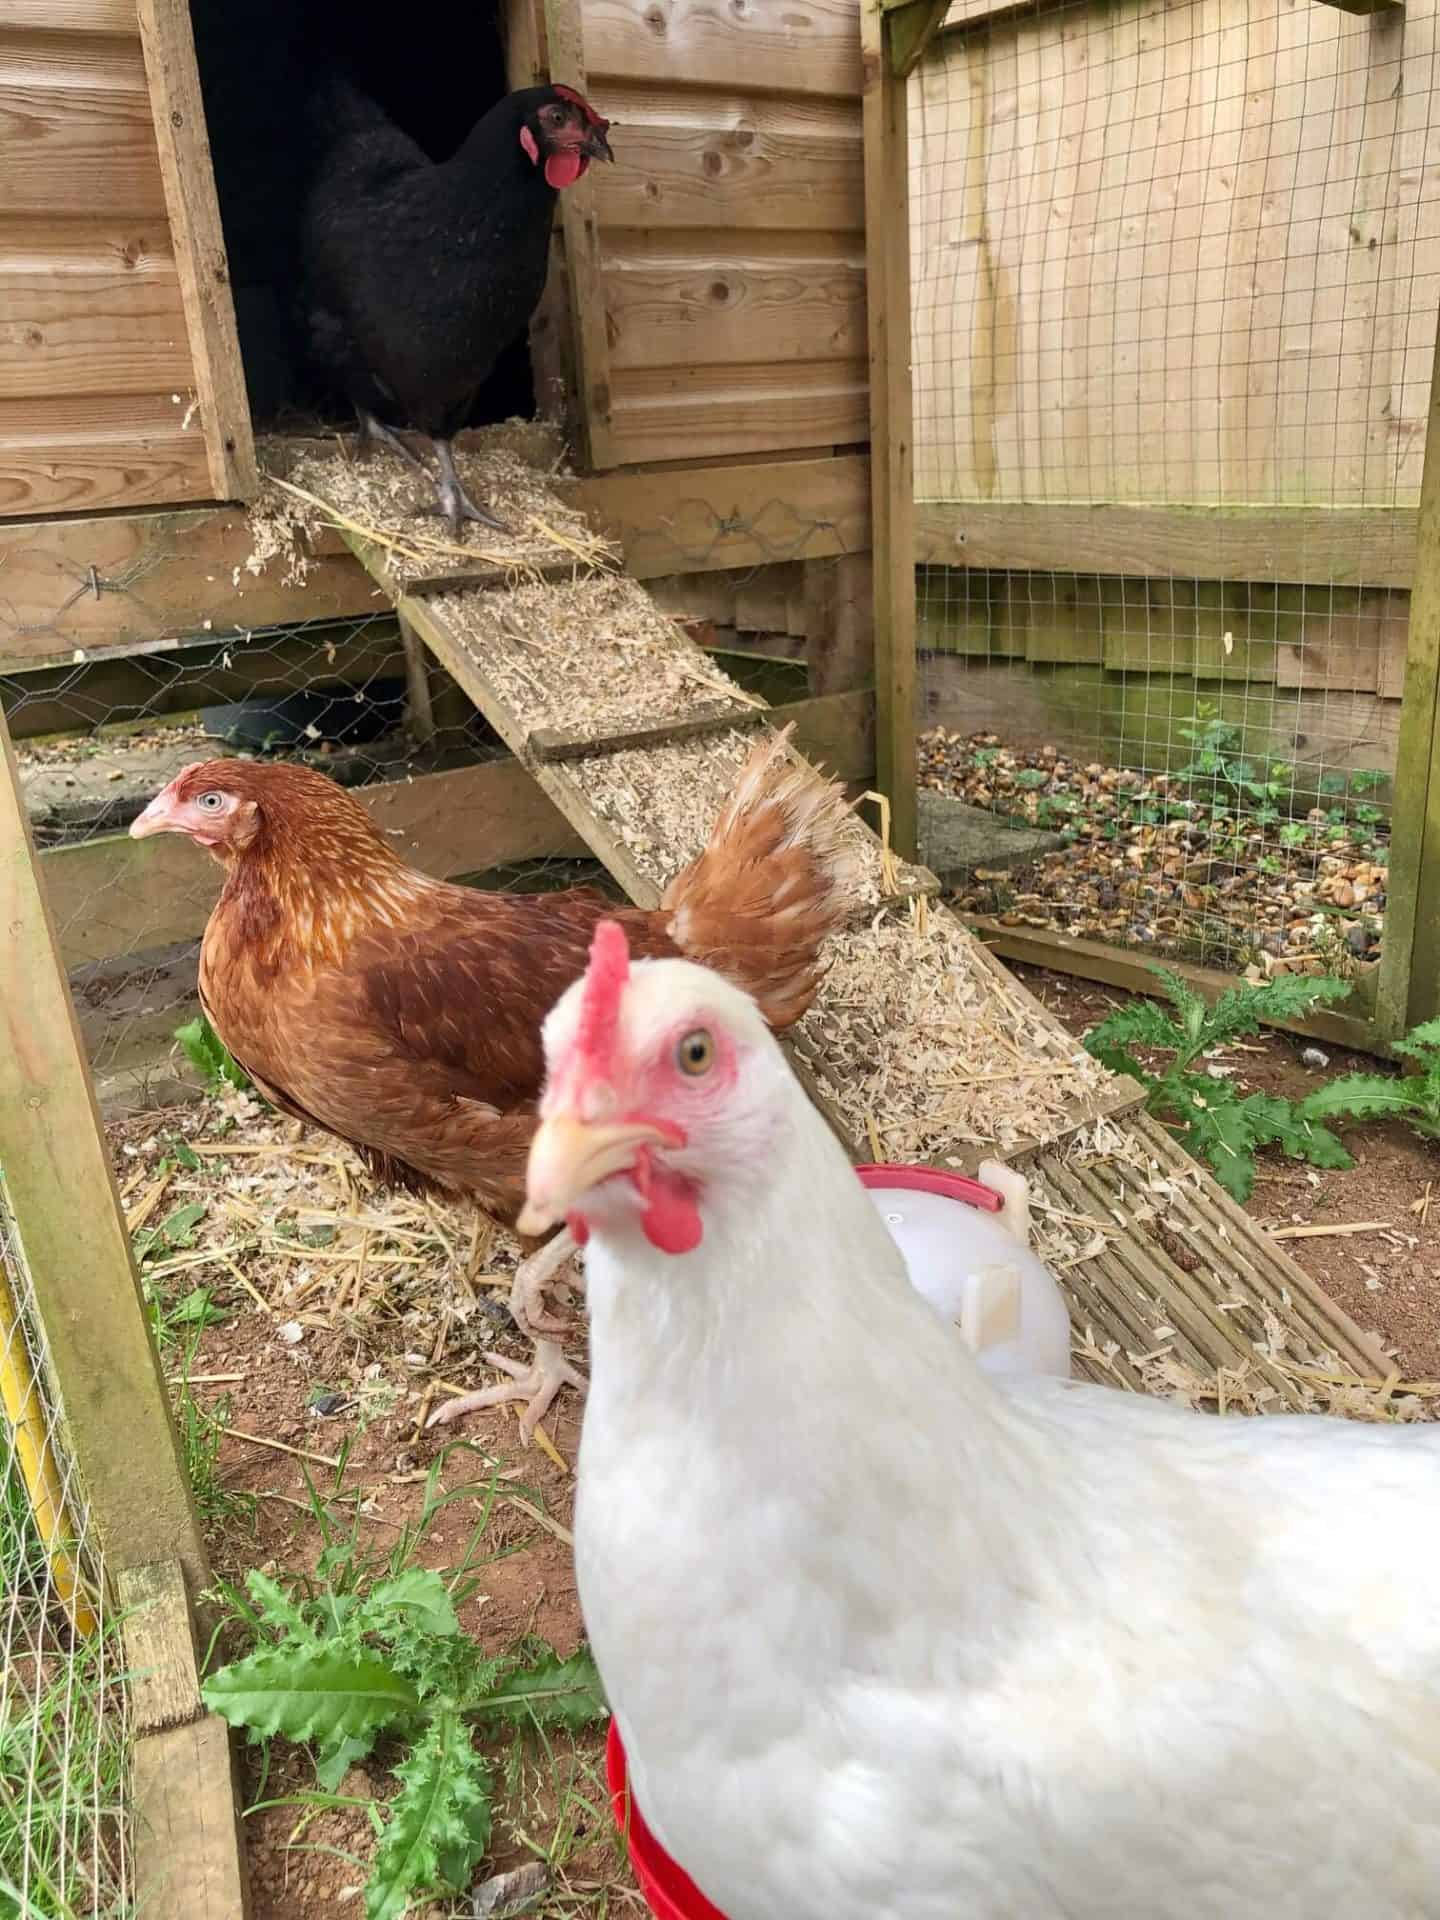 The chickens - August 2020